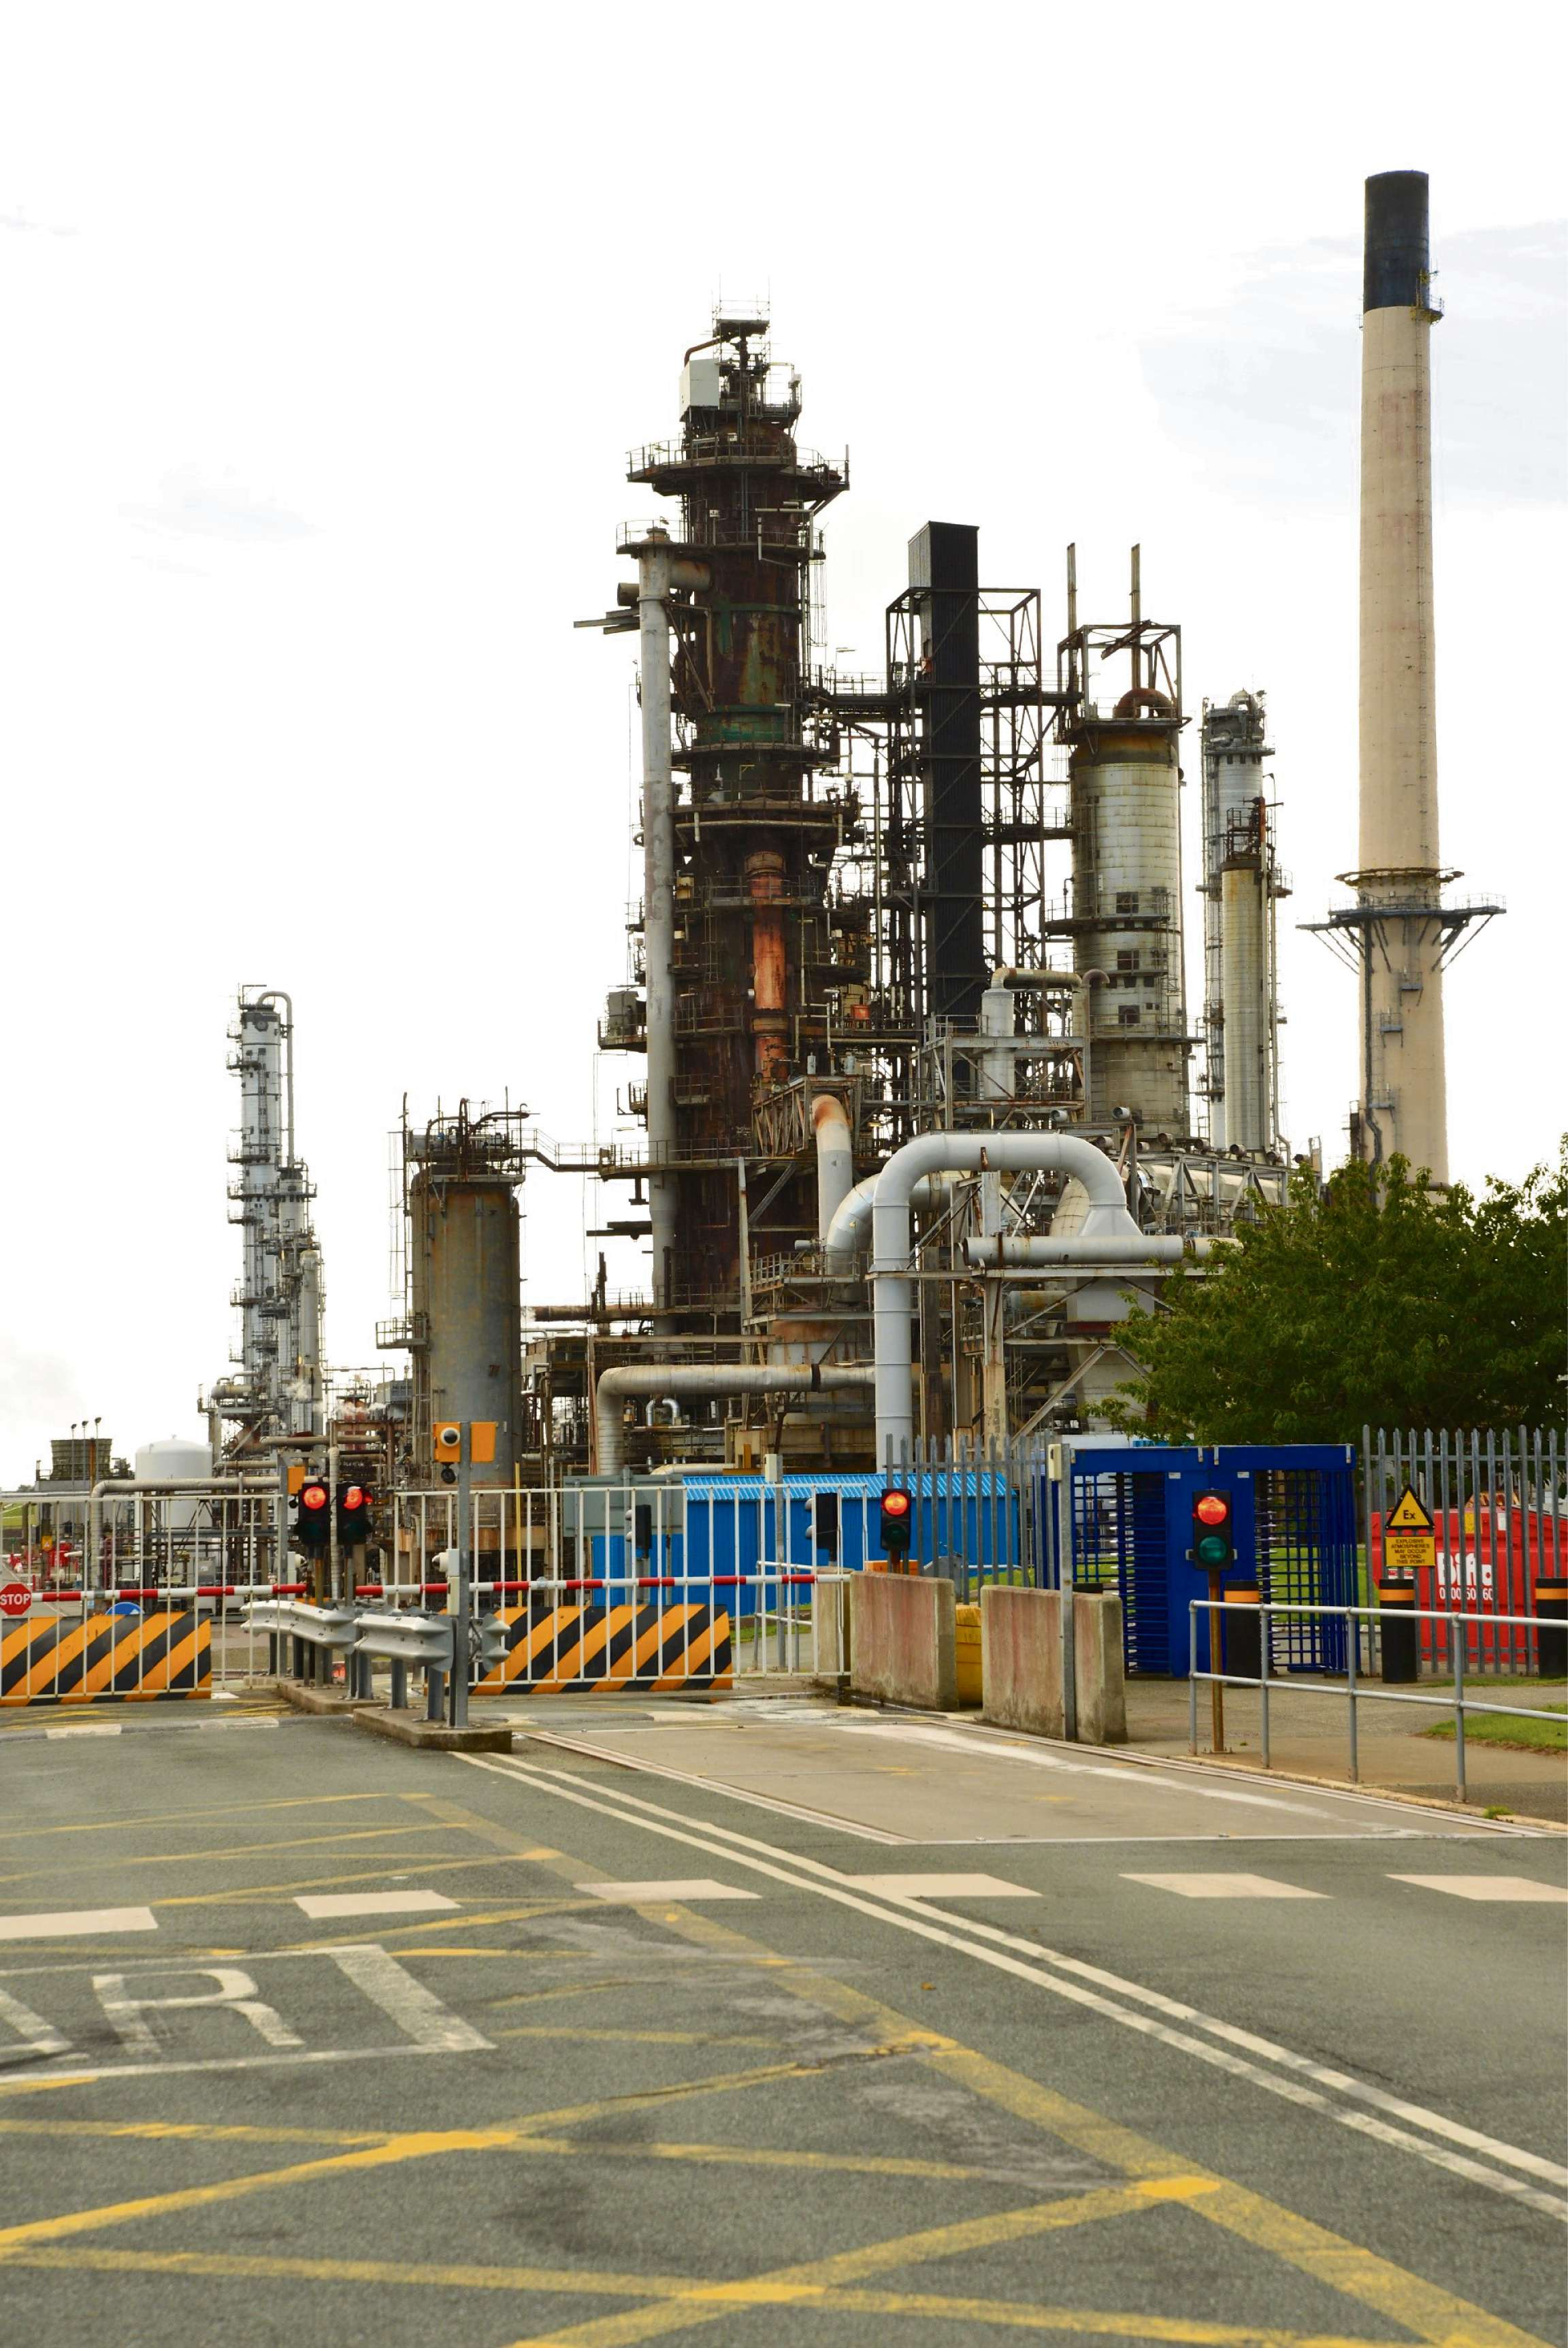 'Buyers still interested in Milford Haven Murco refinery' despite fears over site's future